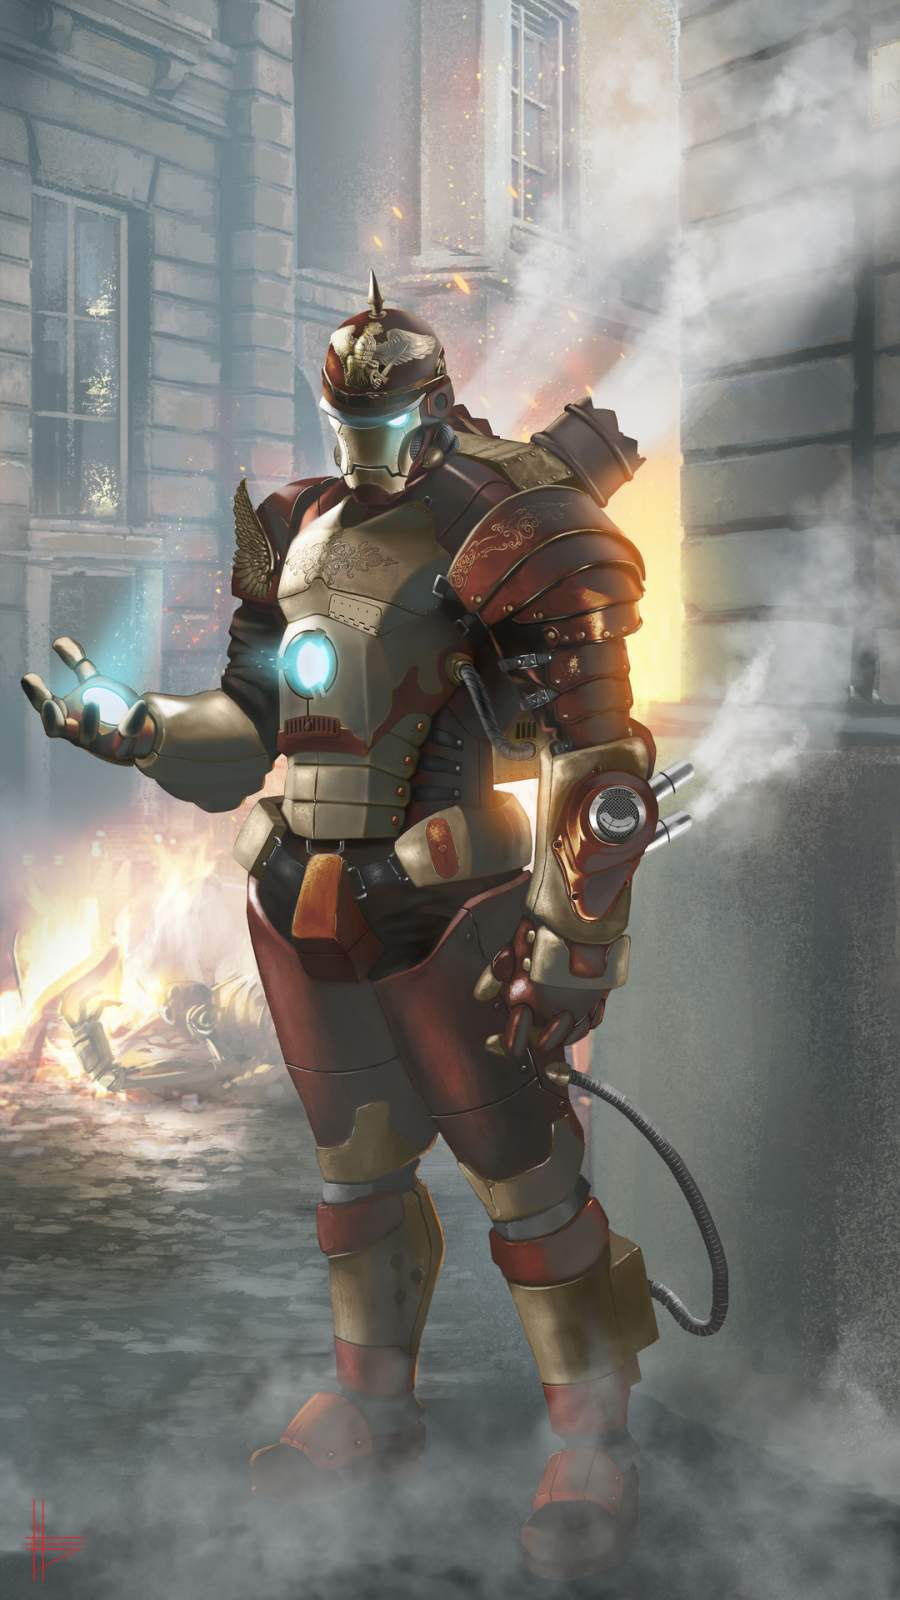 Steampunk Iron Man iPhone Wallpaper